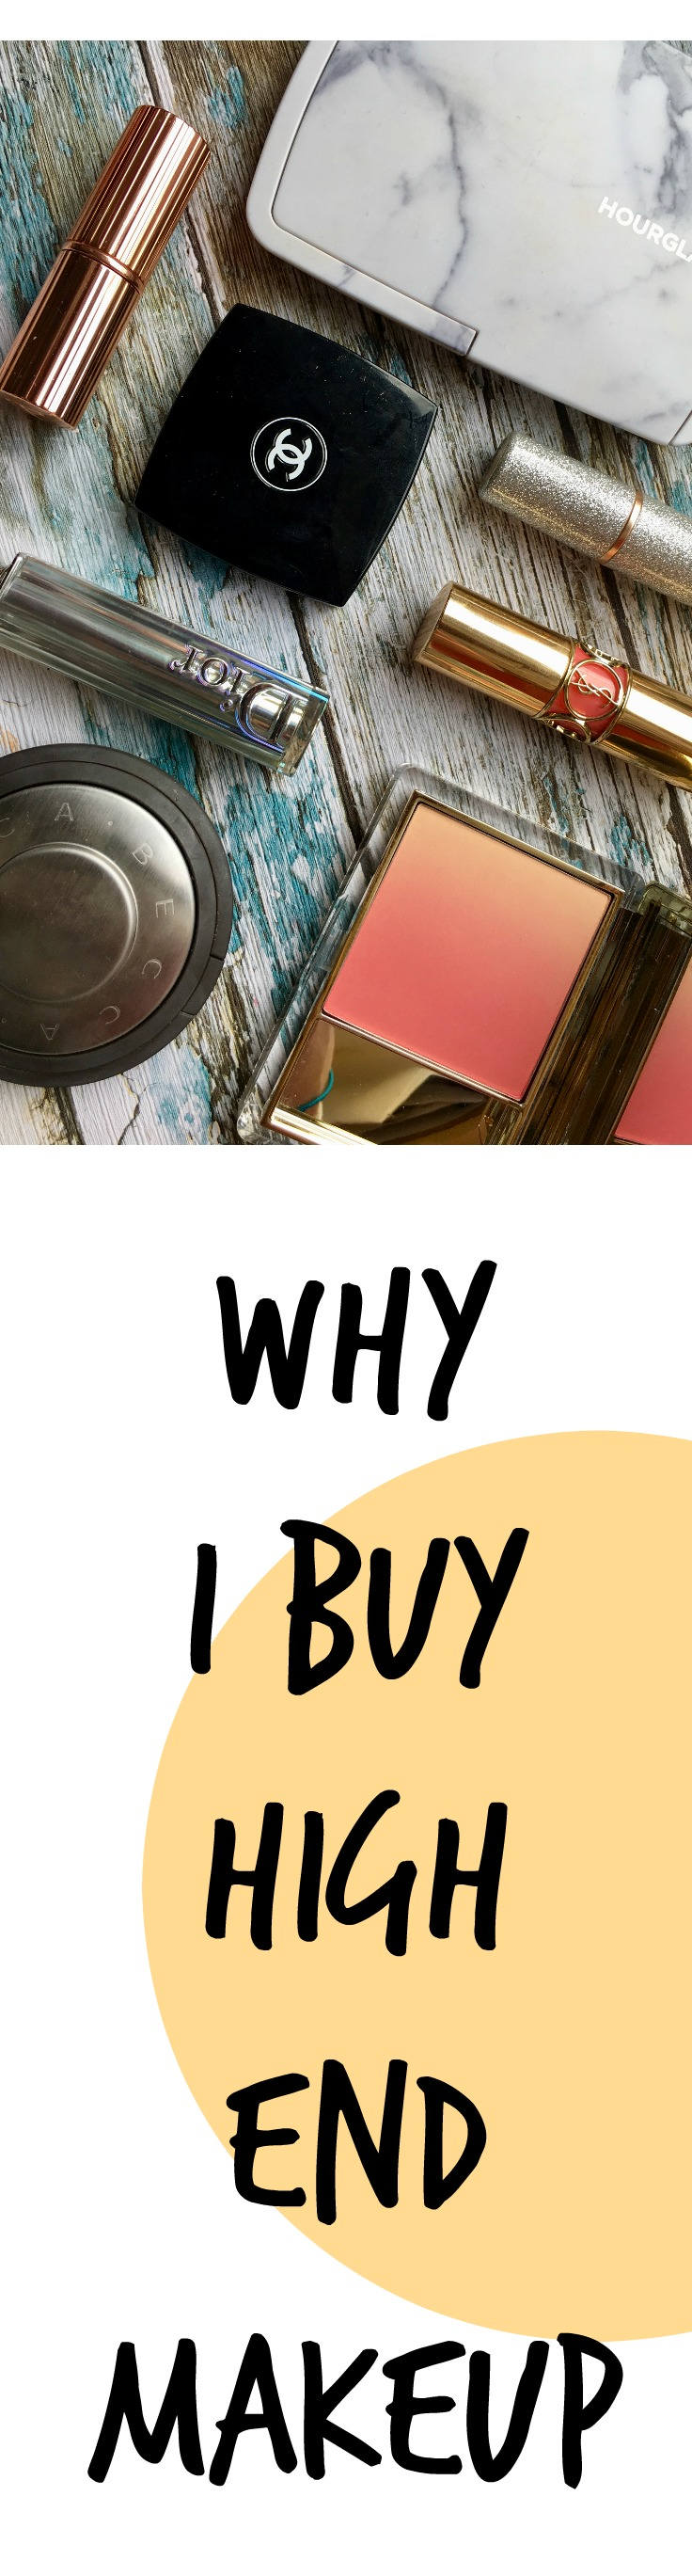 Why I Buy High End MakeUp High end makeup, Makeup, Stuff